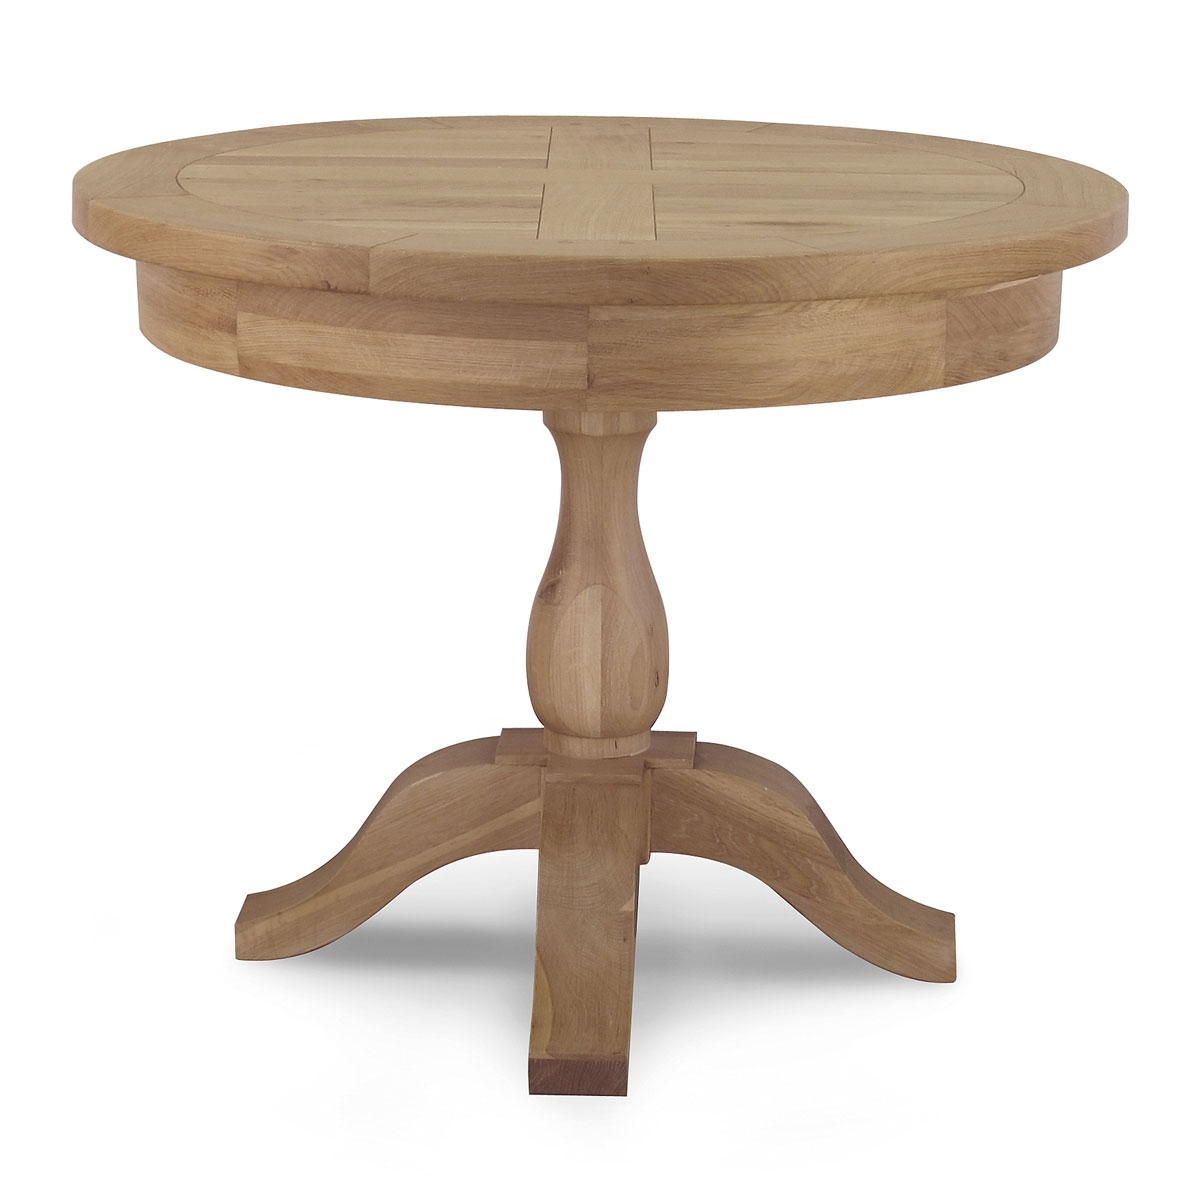 Circular Oak Dining Tables In Well Liked Tuscany Round Dining Table – Willis & Gambier (Gallery 19 of 25)